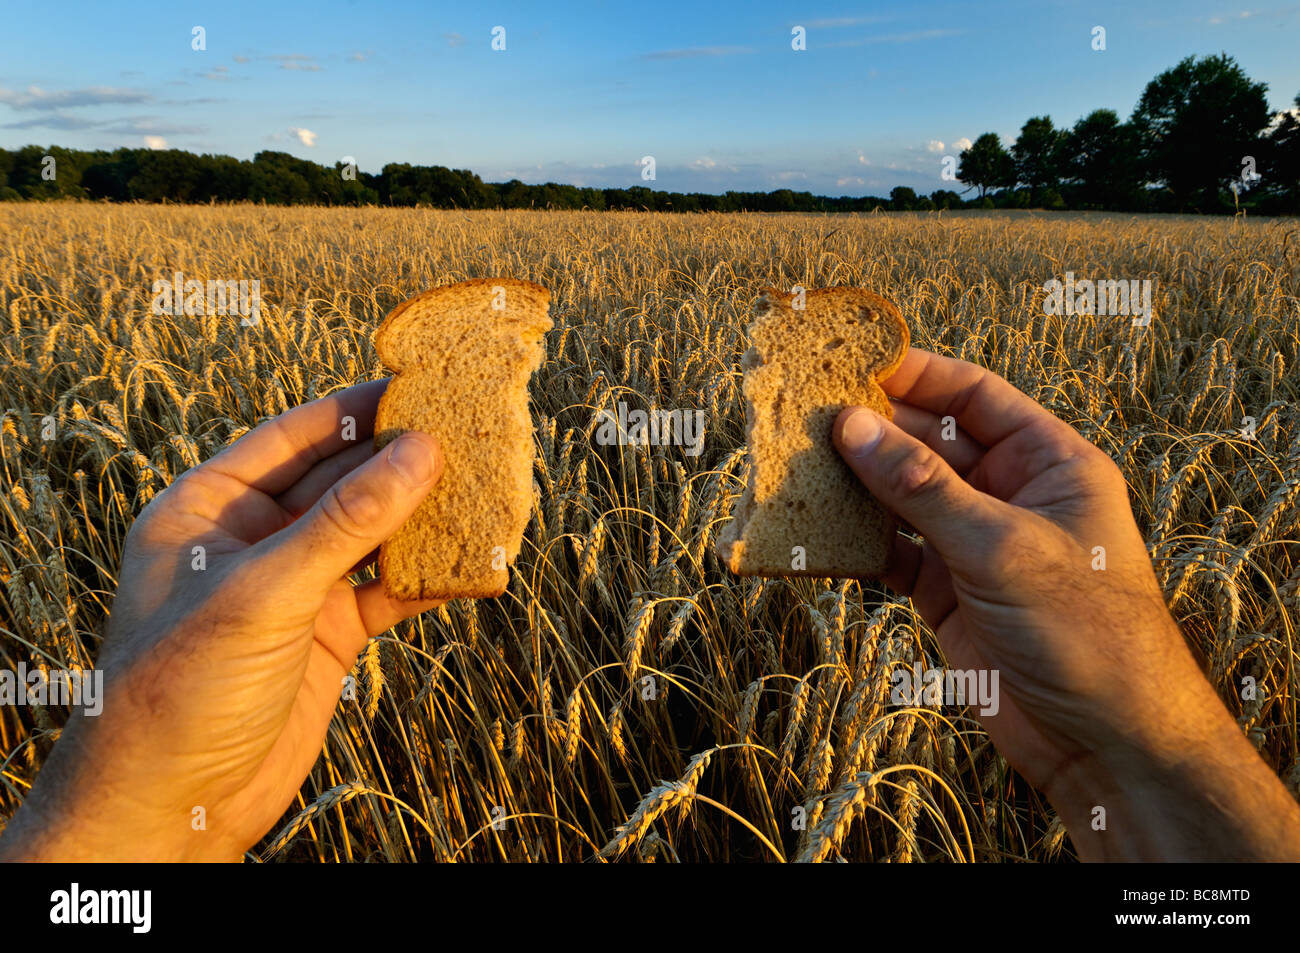 Hands Holding Wheat Bread in Wheat Field - Stock Image